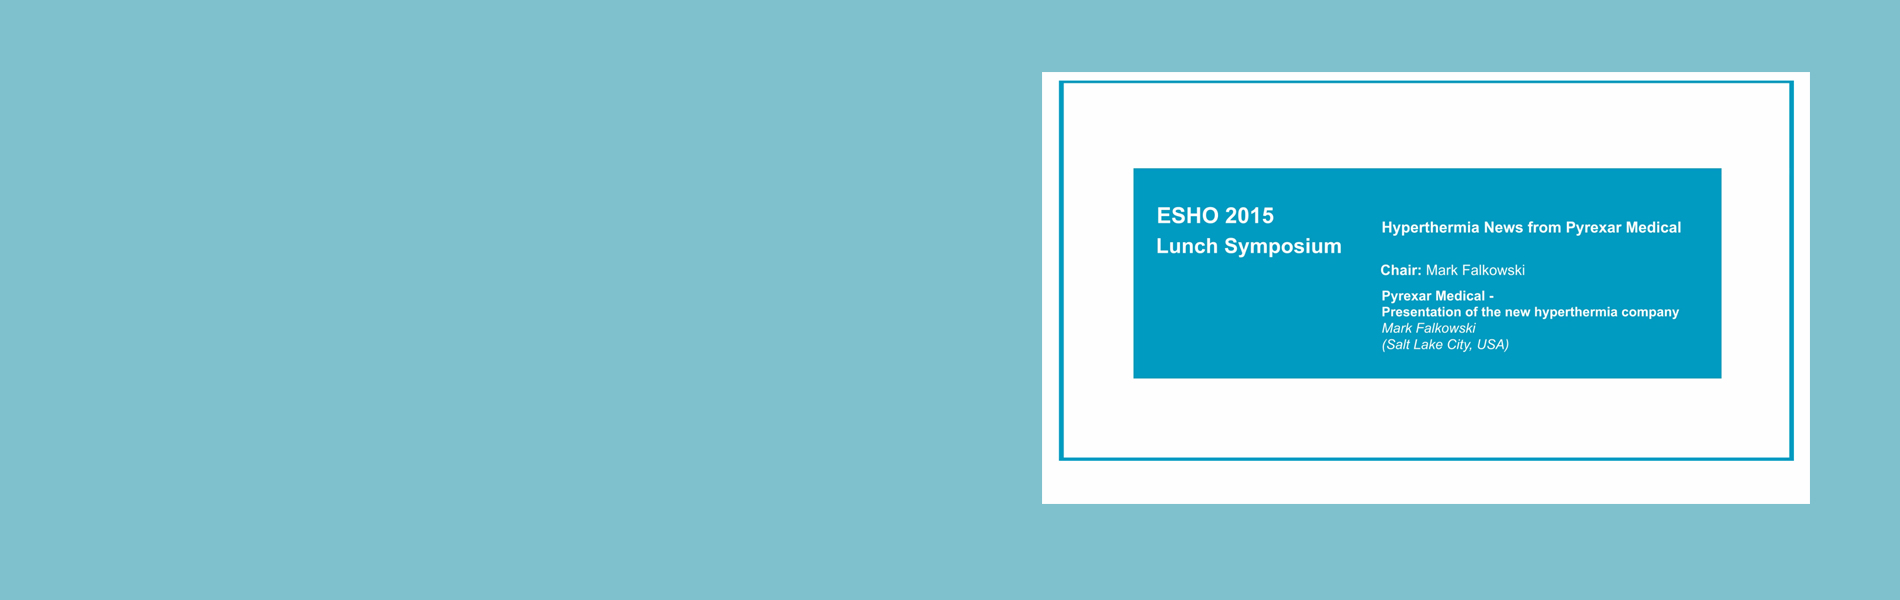 ESHO 2015 Lunch Symposium